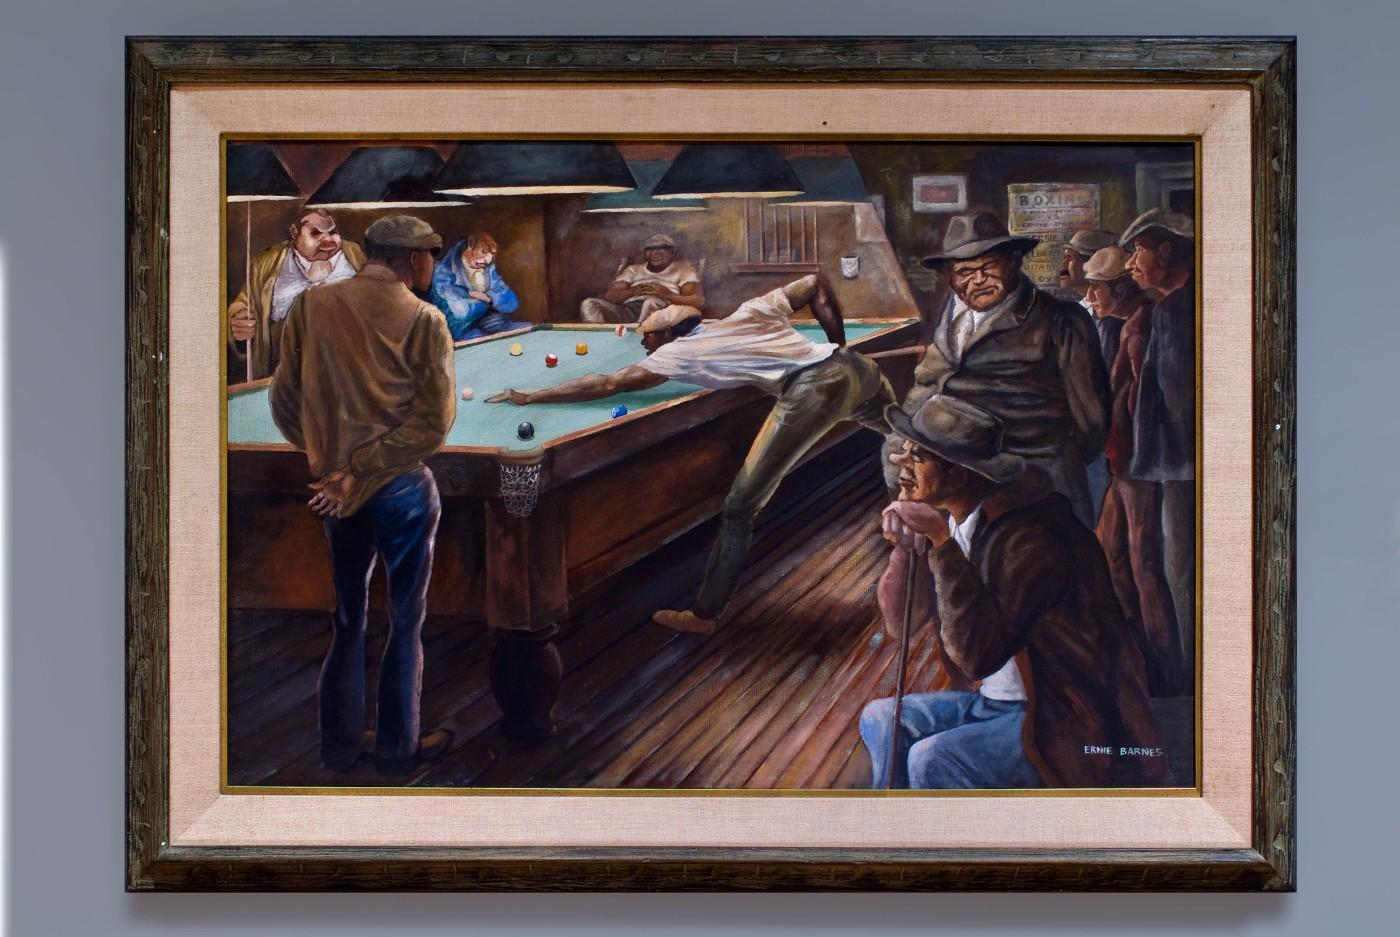 Ernie Barnes, Pool Hall, c. 1970. Oil on canvas. Collection of California African American Museum.